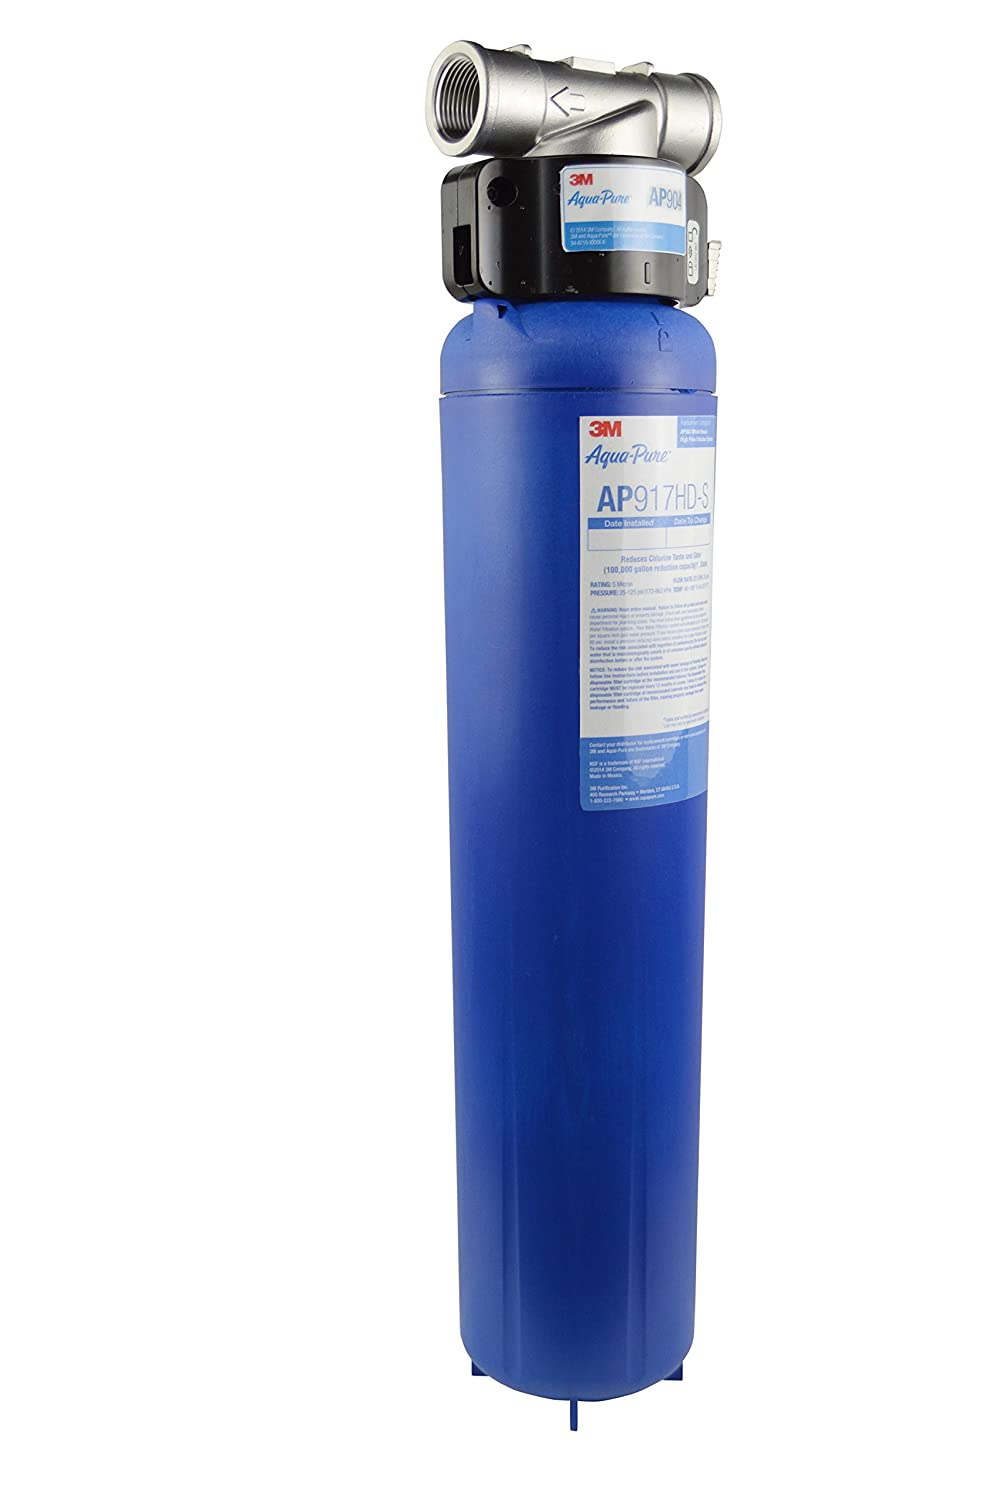 3M Aqua-Pure Whole House Water Filtration System – Model AP904